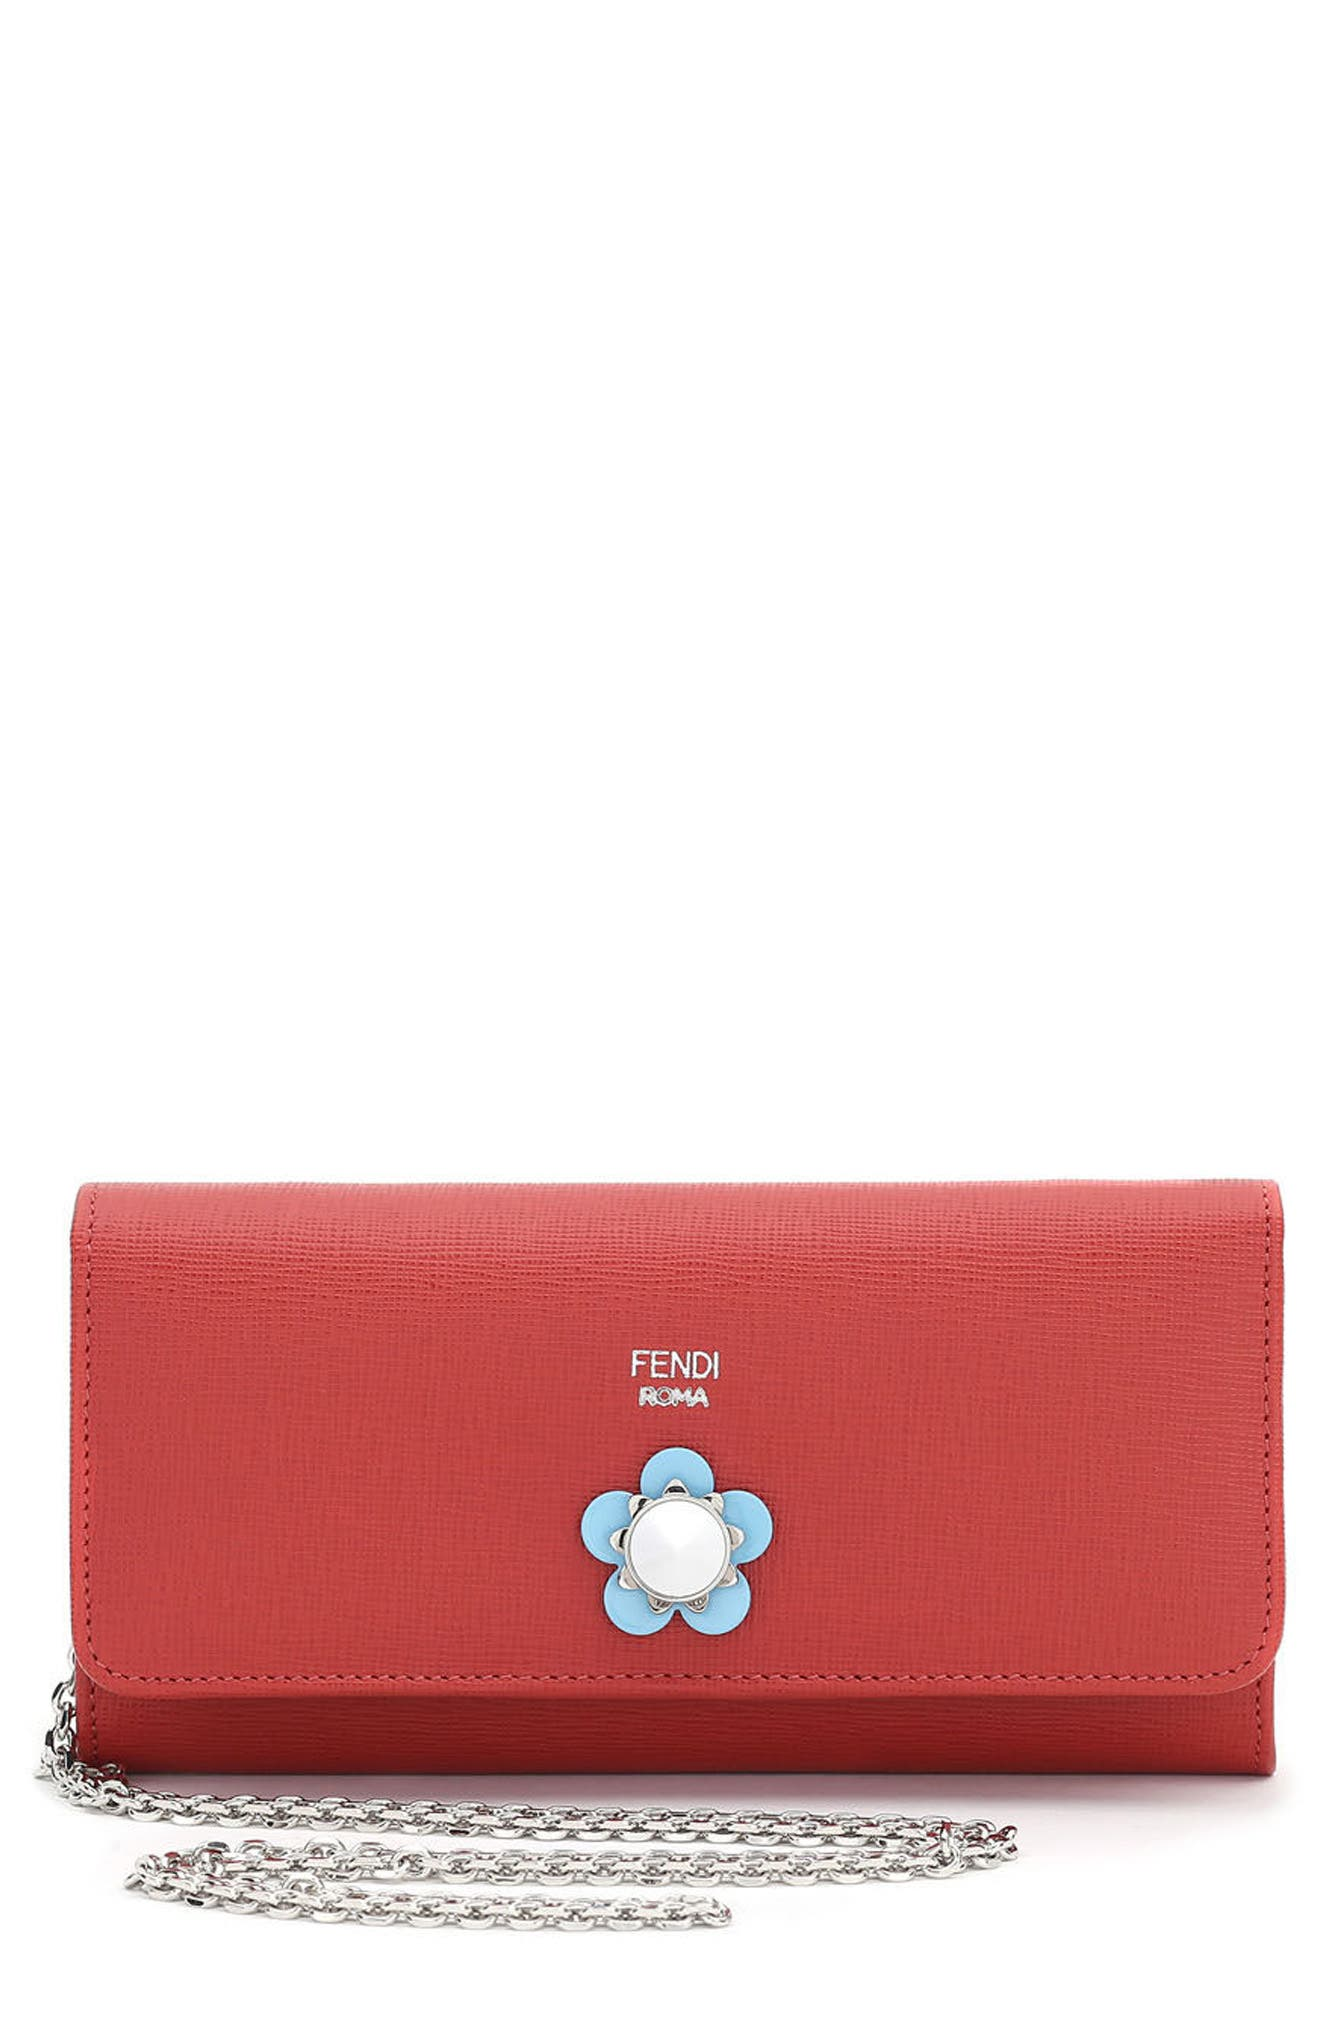 Fendi Flowerland Leather Continental Wallet